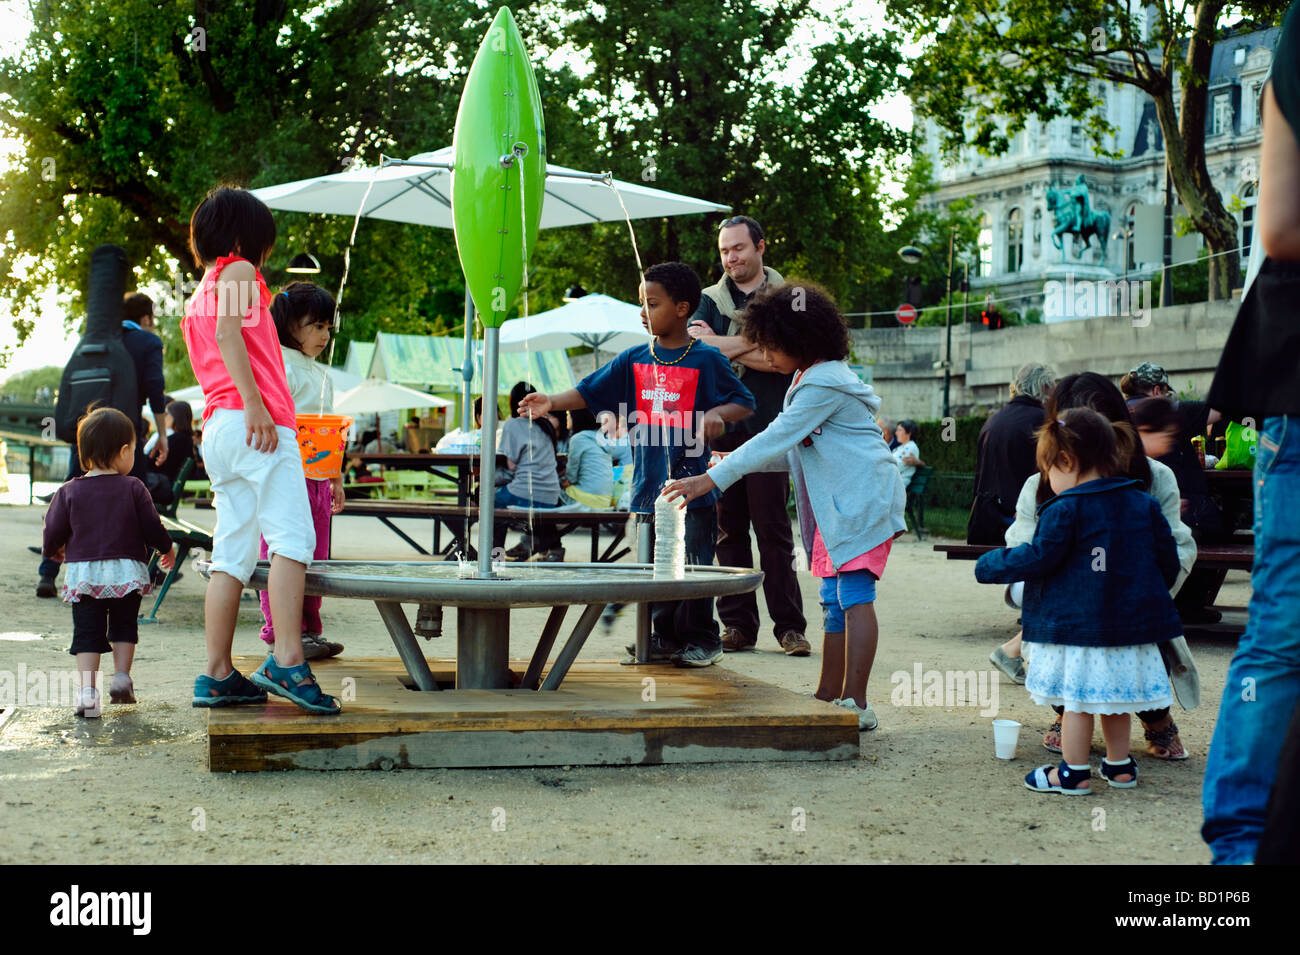 Paris France, Public Events, Children Drinking Water from Public Fountain on Seine River Quay at 'Paris Plages' - Stock Image